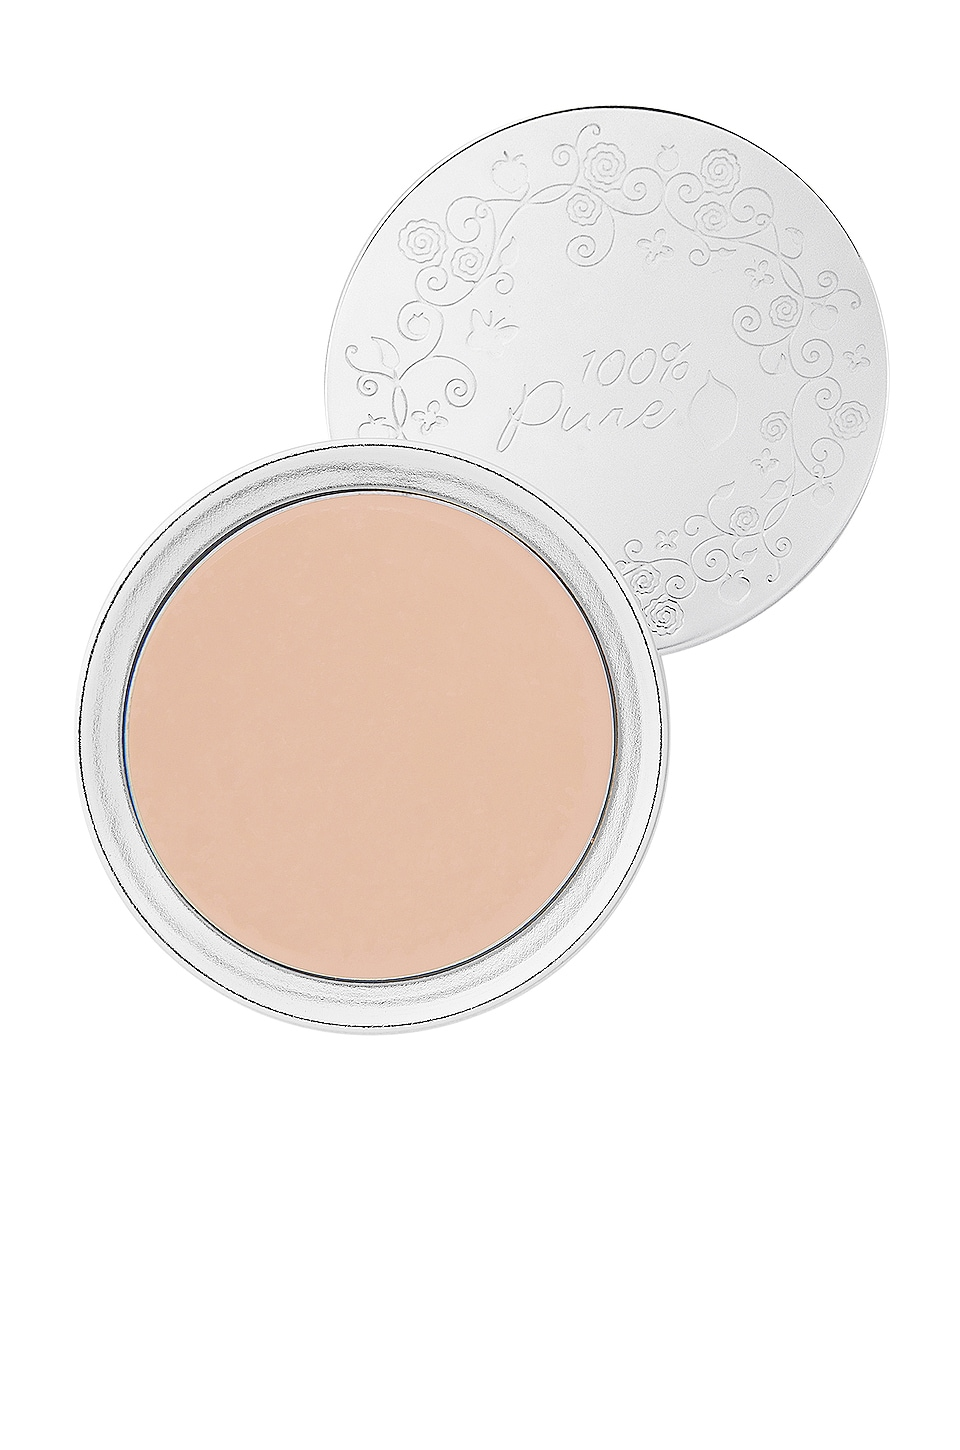 100% Pure Fruit Pigmented Cream Foundation in Alpine Rose